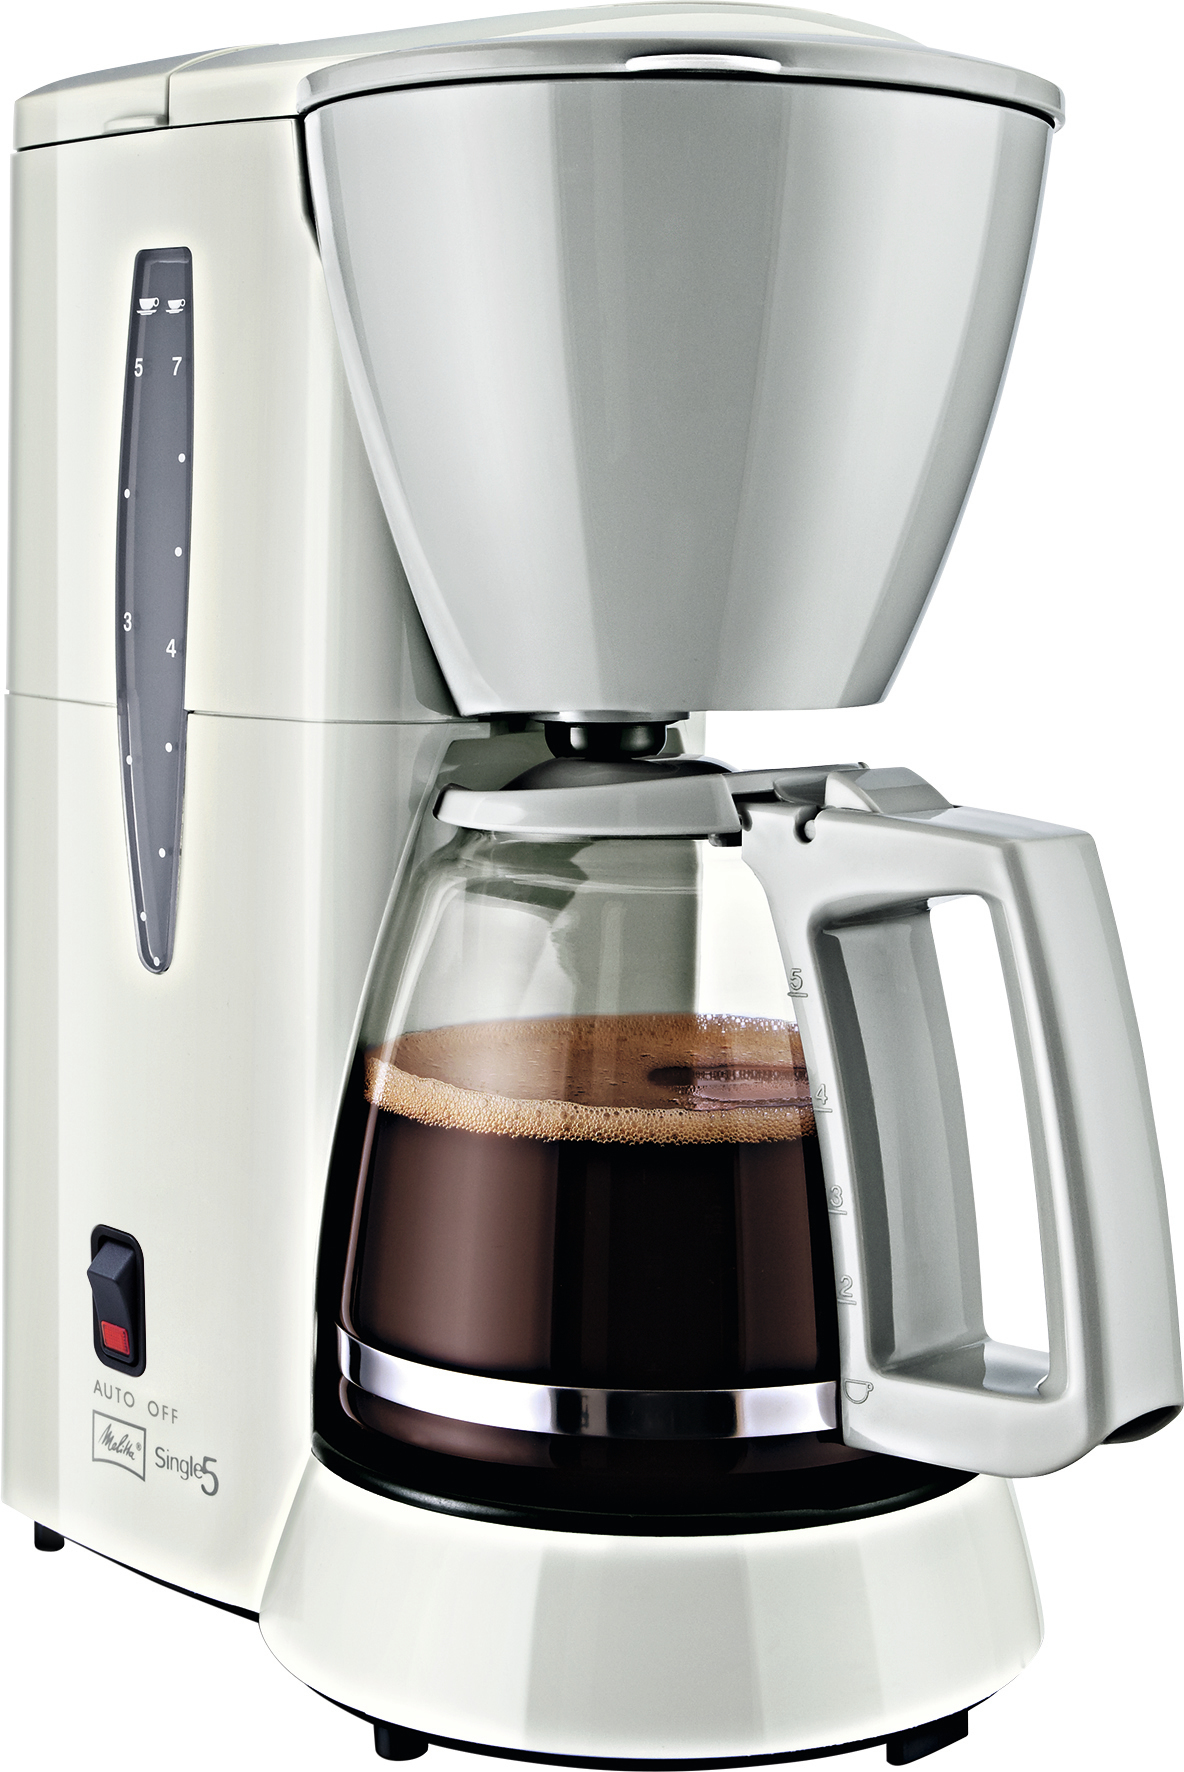 Melitta M 720-1/1 Single 5